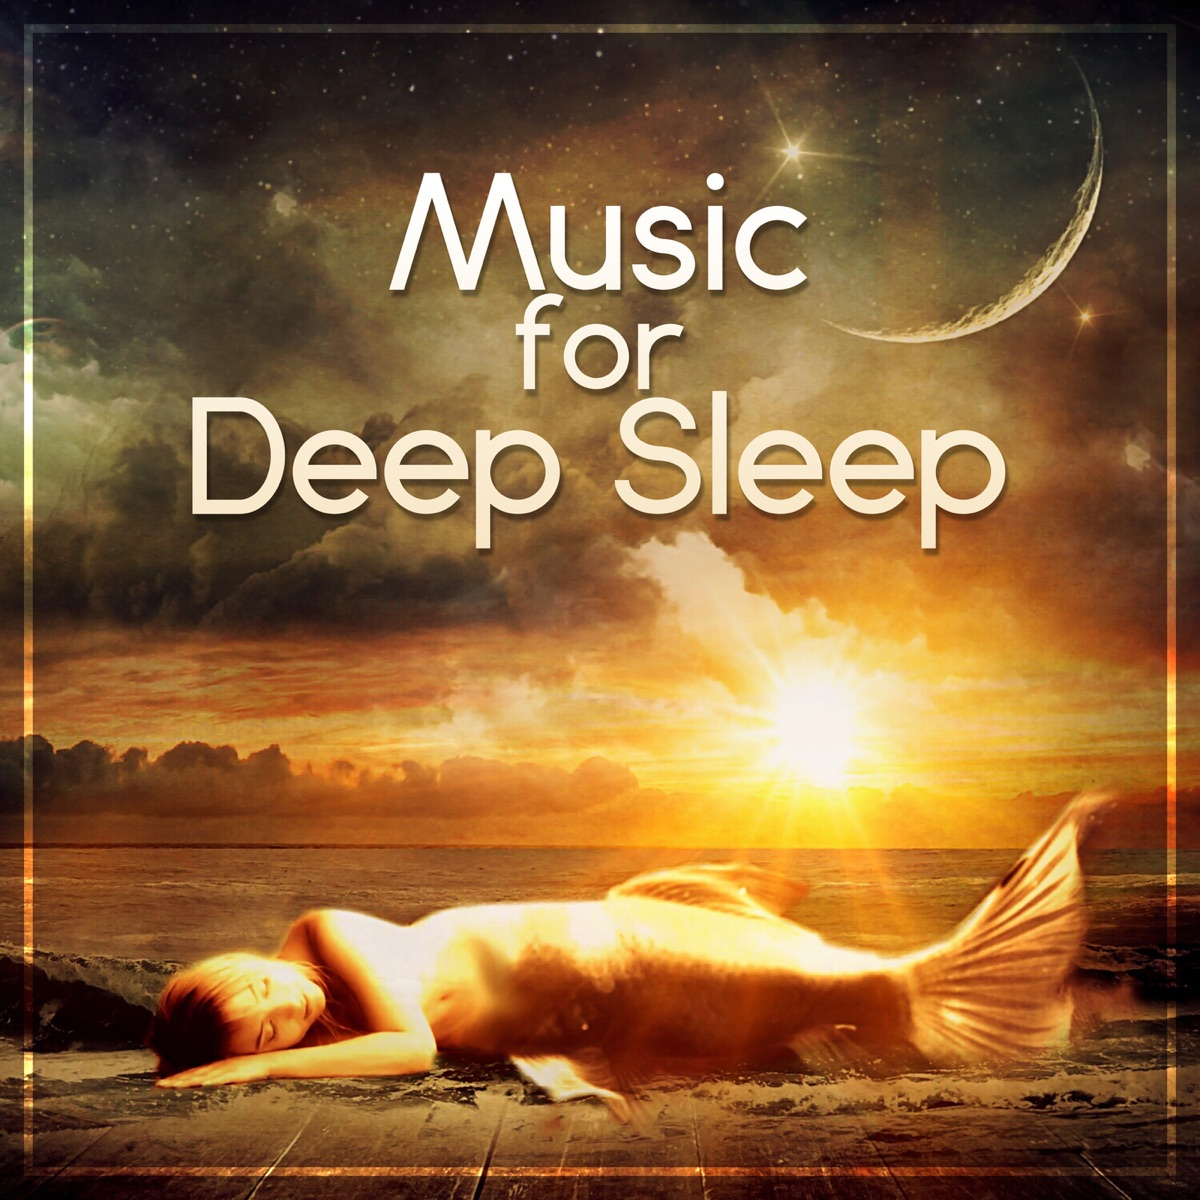 Music for Reiki: 50 Zen Tracks Healing Waves for Massage, Meditation, Relaxation, Spa, Yoga, Chakra, Sleep Therapy, Flute Music fo Depression and Anxiety